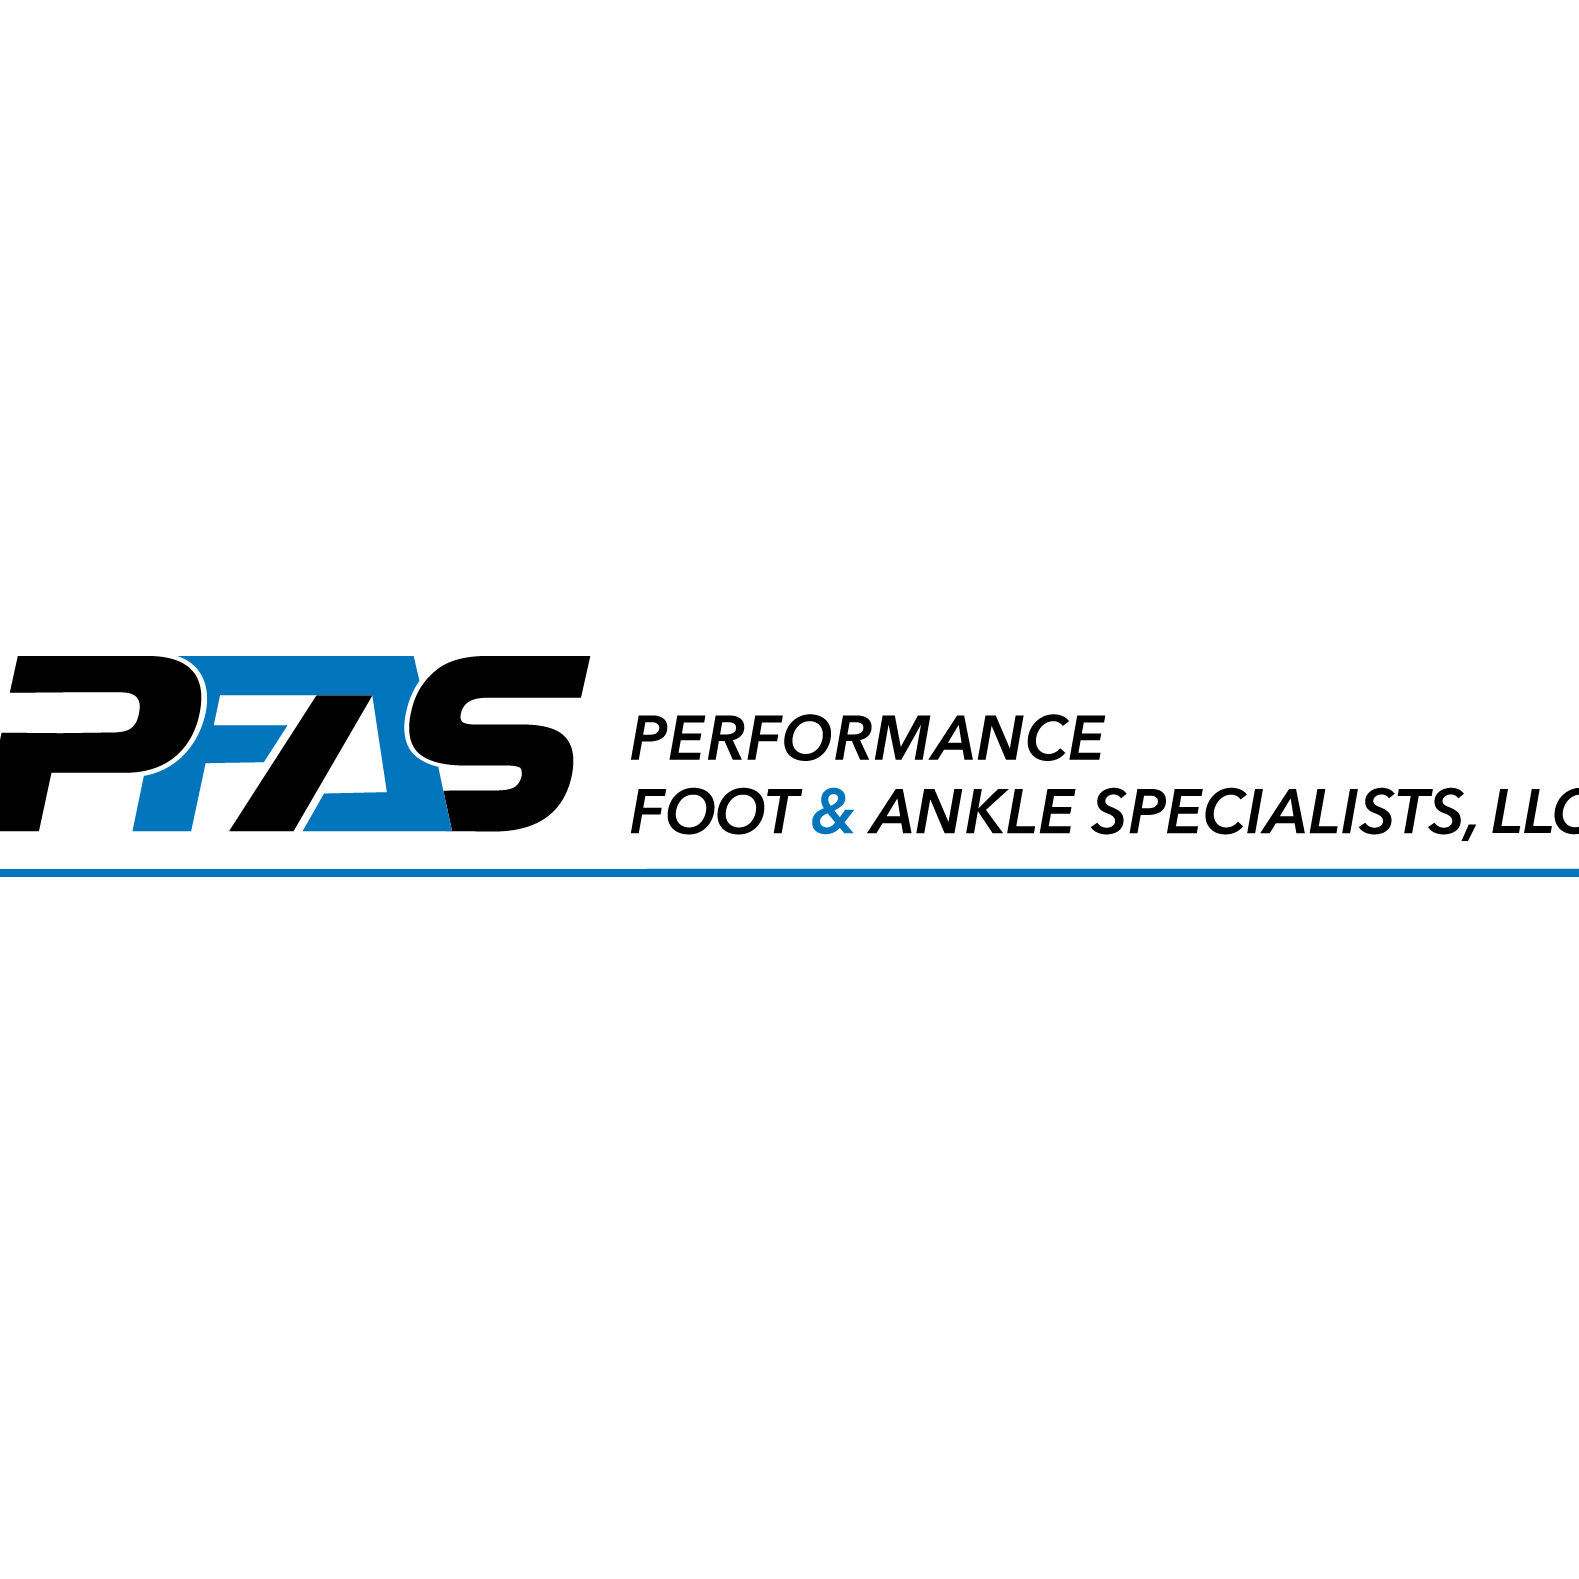 Performance Foot & Ankle Specialists, LLC